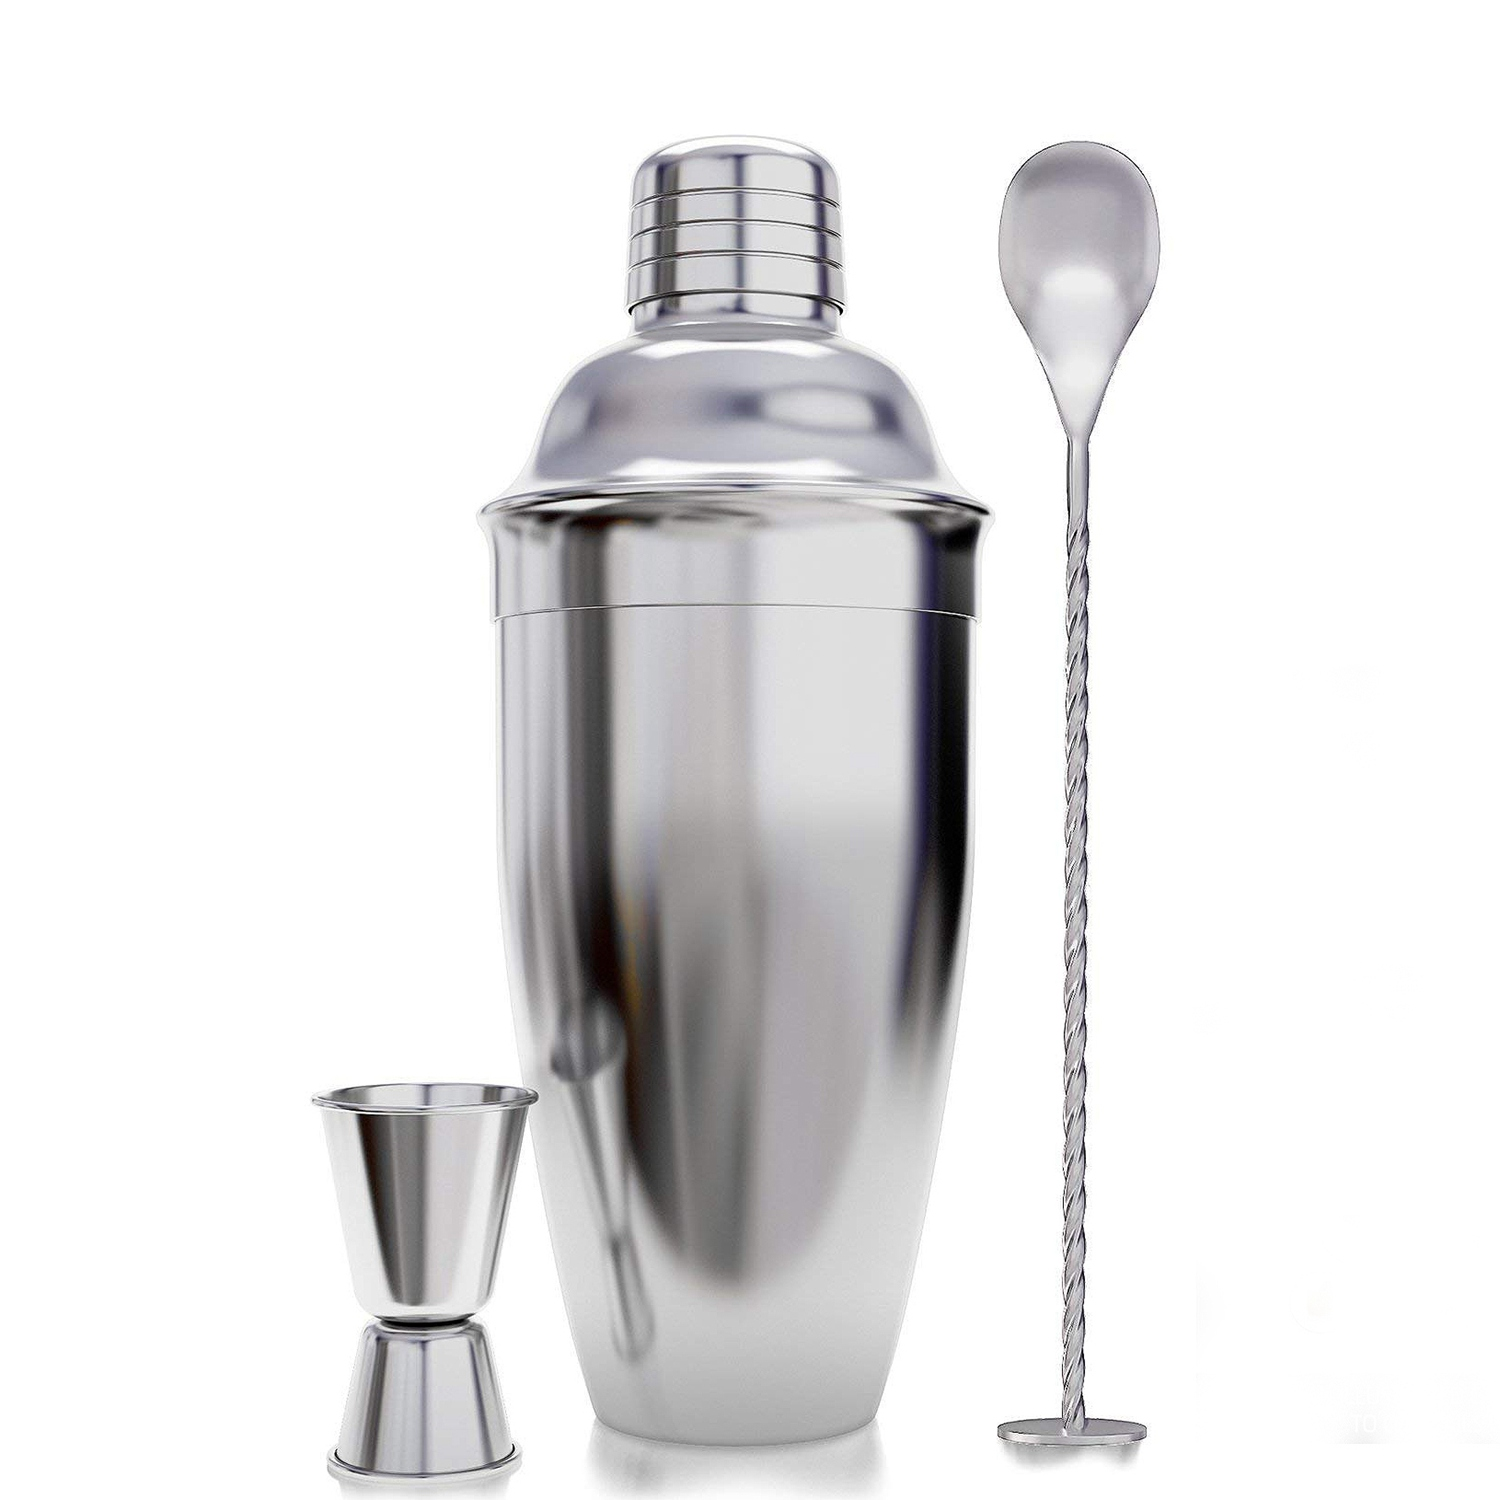 LUDA 3-Piece Cocktail Shaker Bar Set Accessories-With Measuring Cup And Mixing Spoon Professional Stainless Steel Bar Tool-Bui